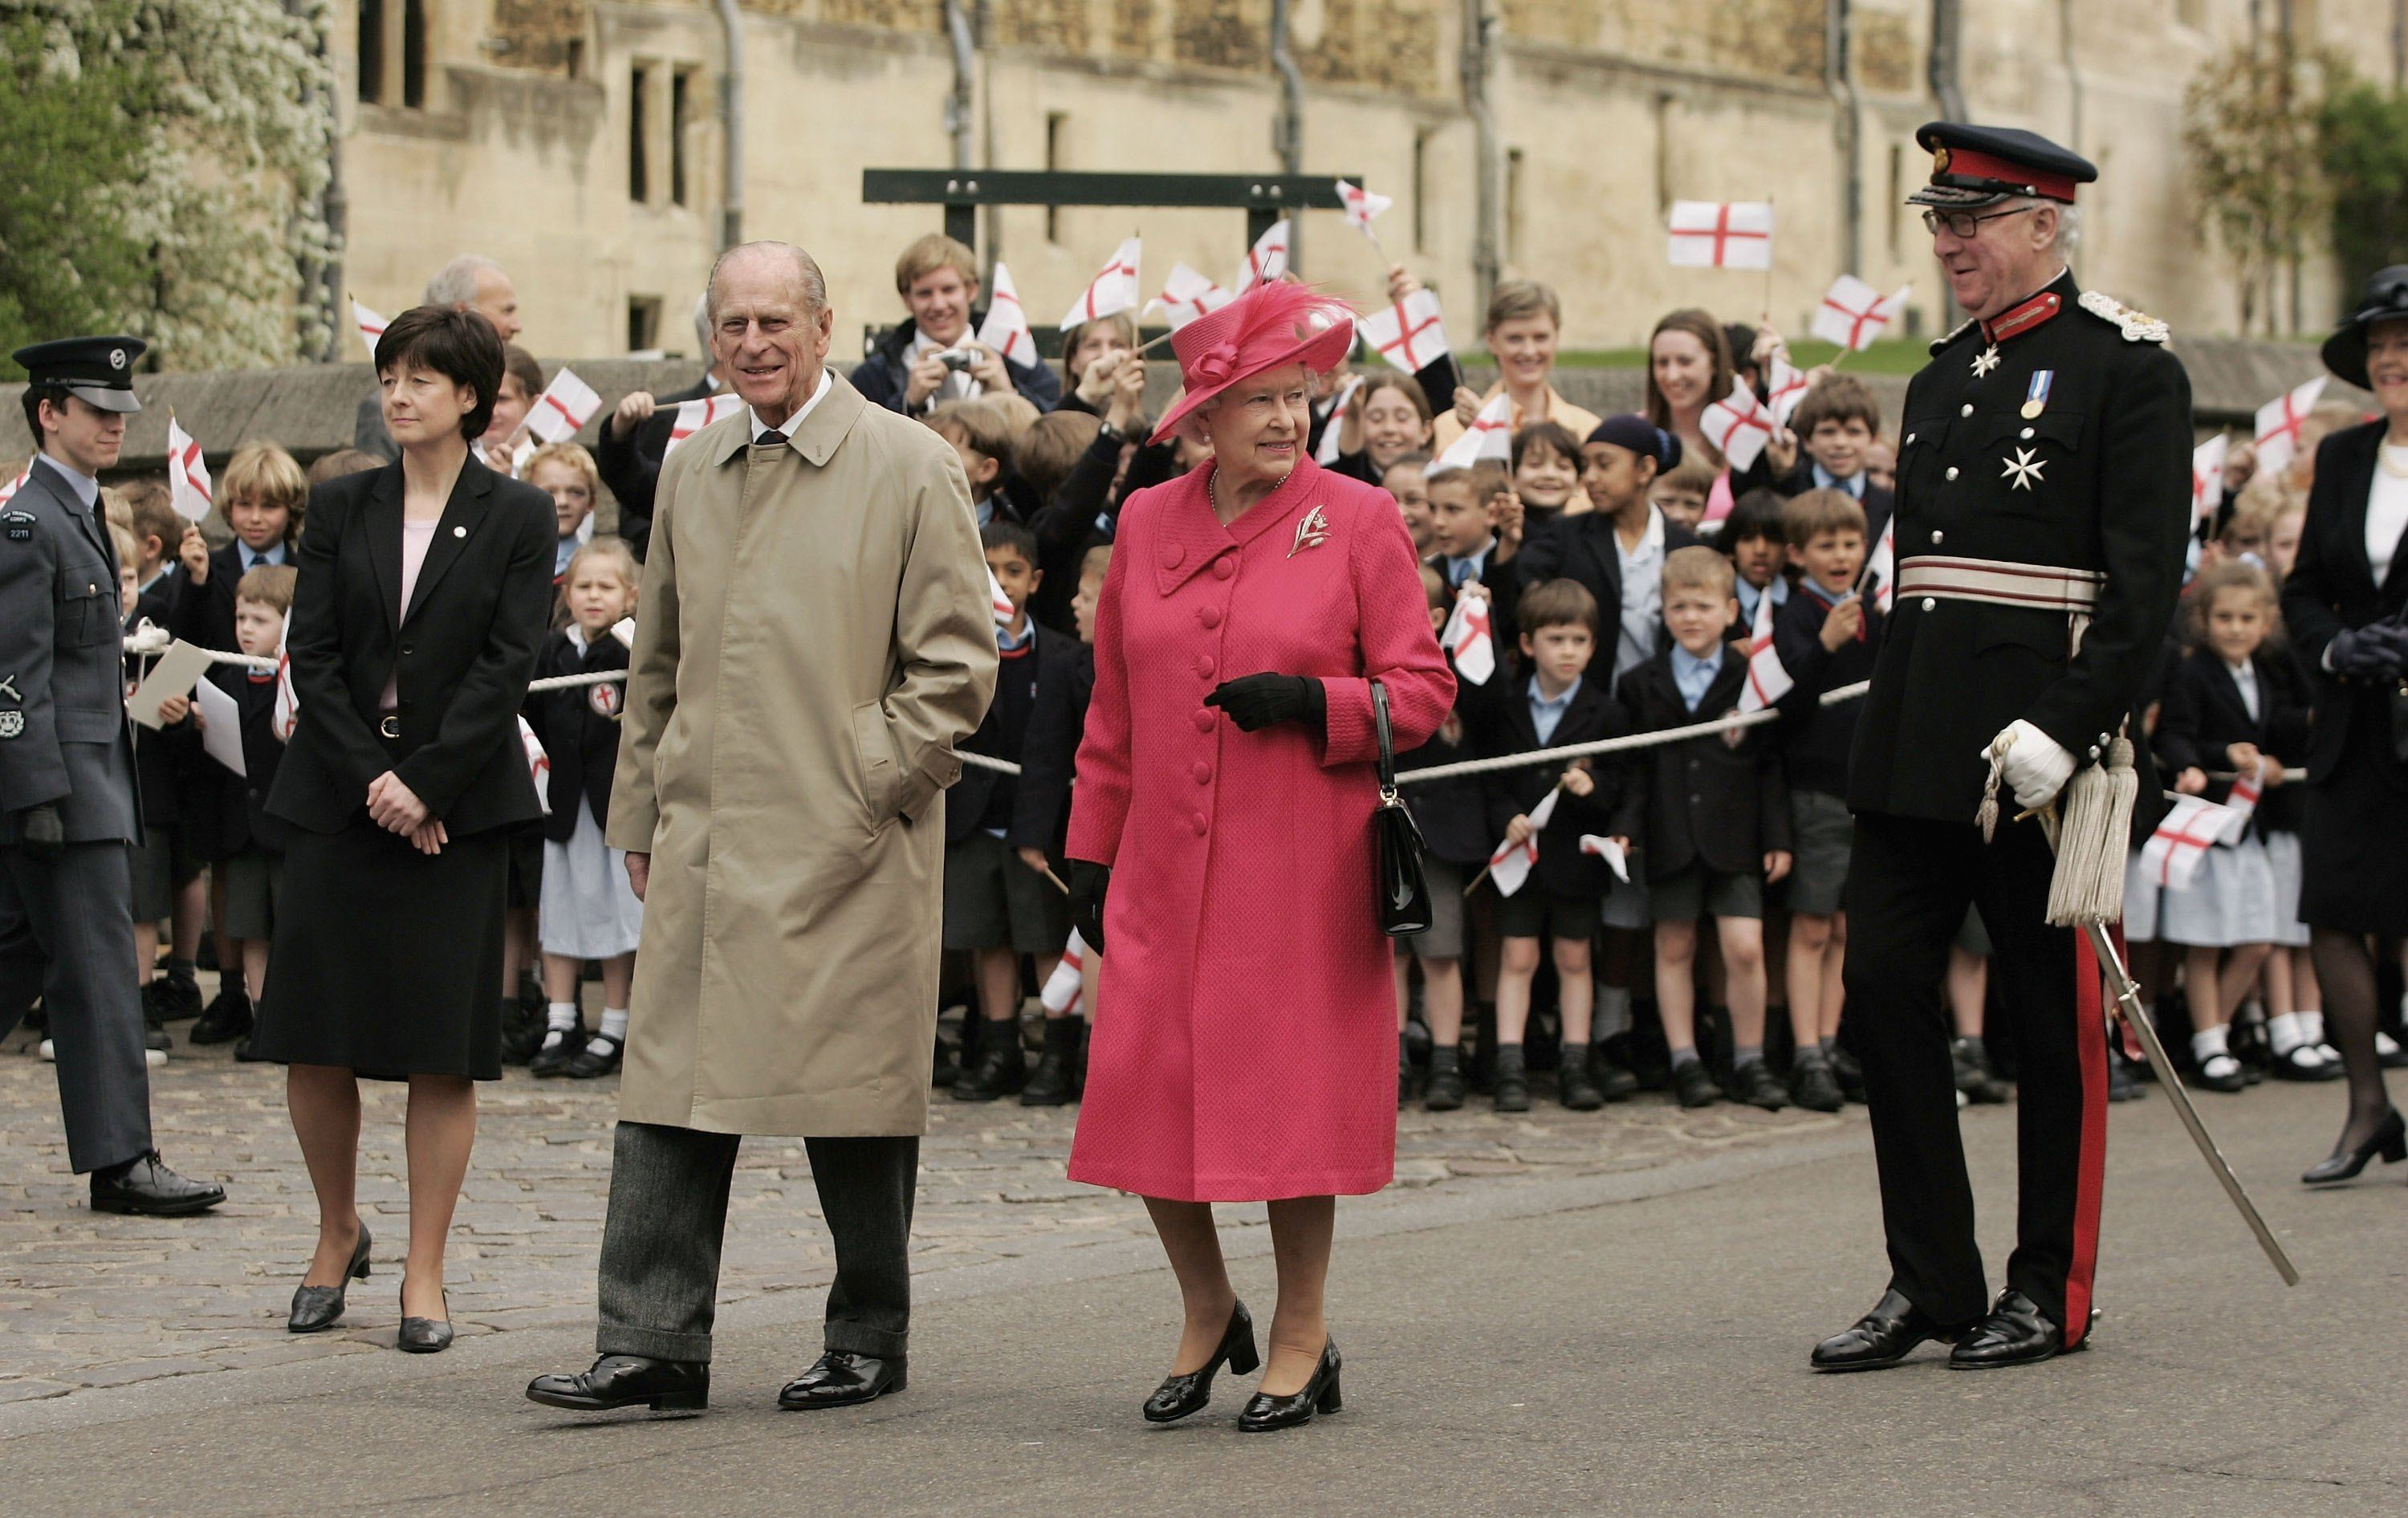 Queen Elizabeth II and Prince Philip, Duke of Edinburgh meet with well wishers on April 21, 2006 in Windsor, England. HRH Queen Elizabeth II is taking part in her traditional walk in the town to celebrate her 80th Birthday. In the evening the Prince of Wales will host a private party for The Queen and other members of the Royal family at Kew Palace.